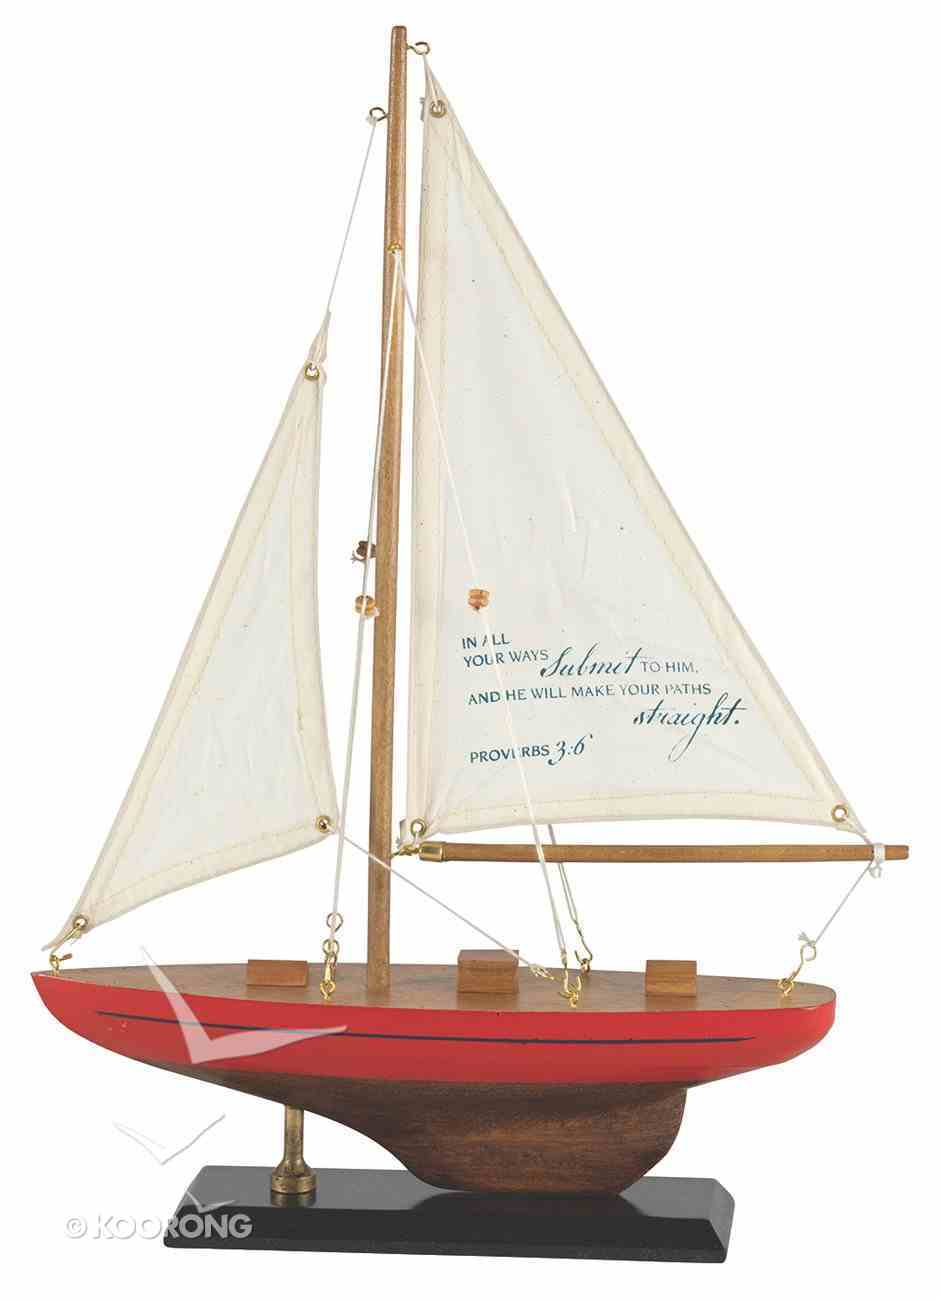 Sailboat Wood/Fabric: In All Your Ways Proverbs 3:6 (Red & Blue Stripe) Homeware